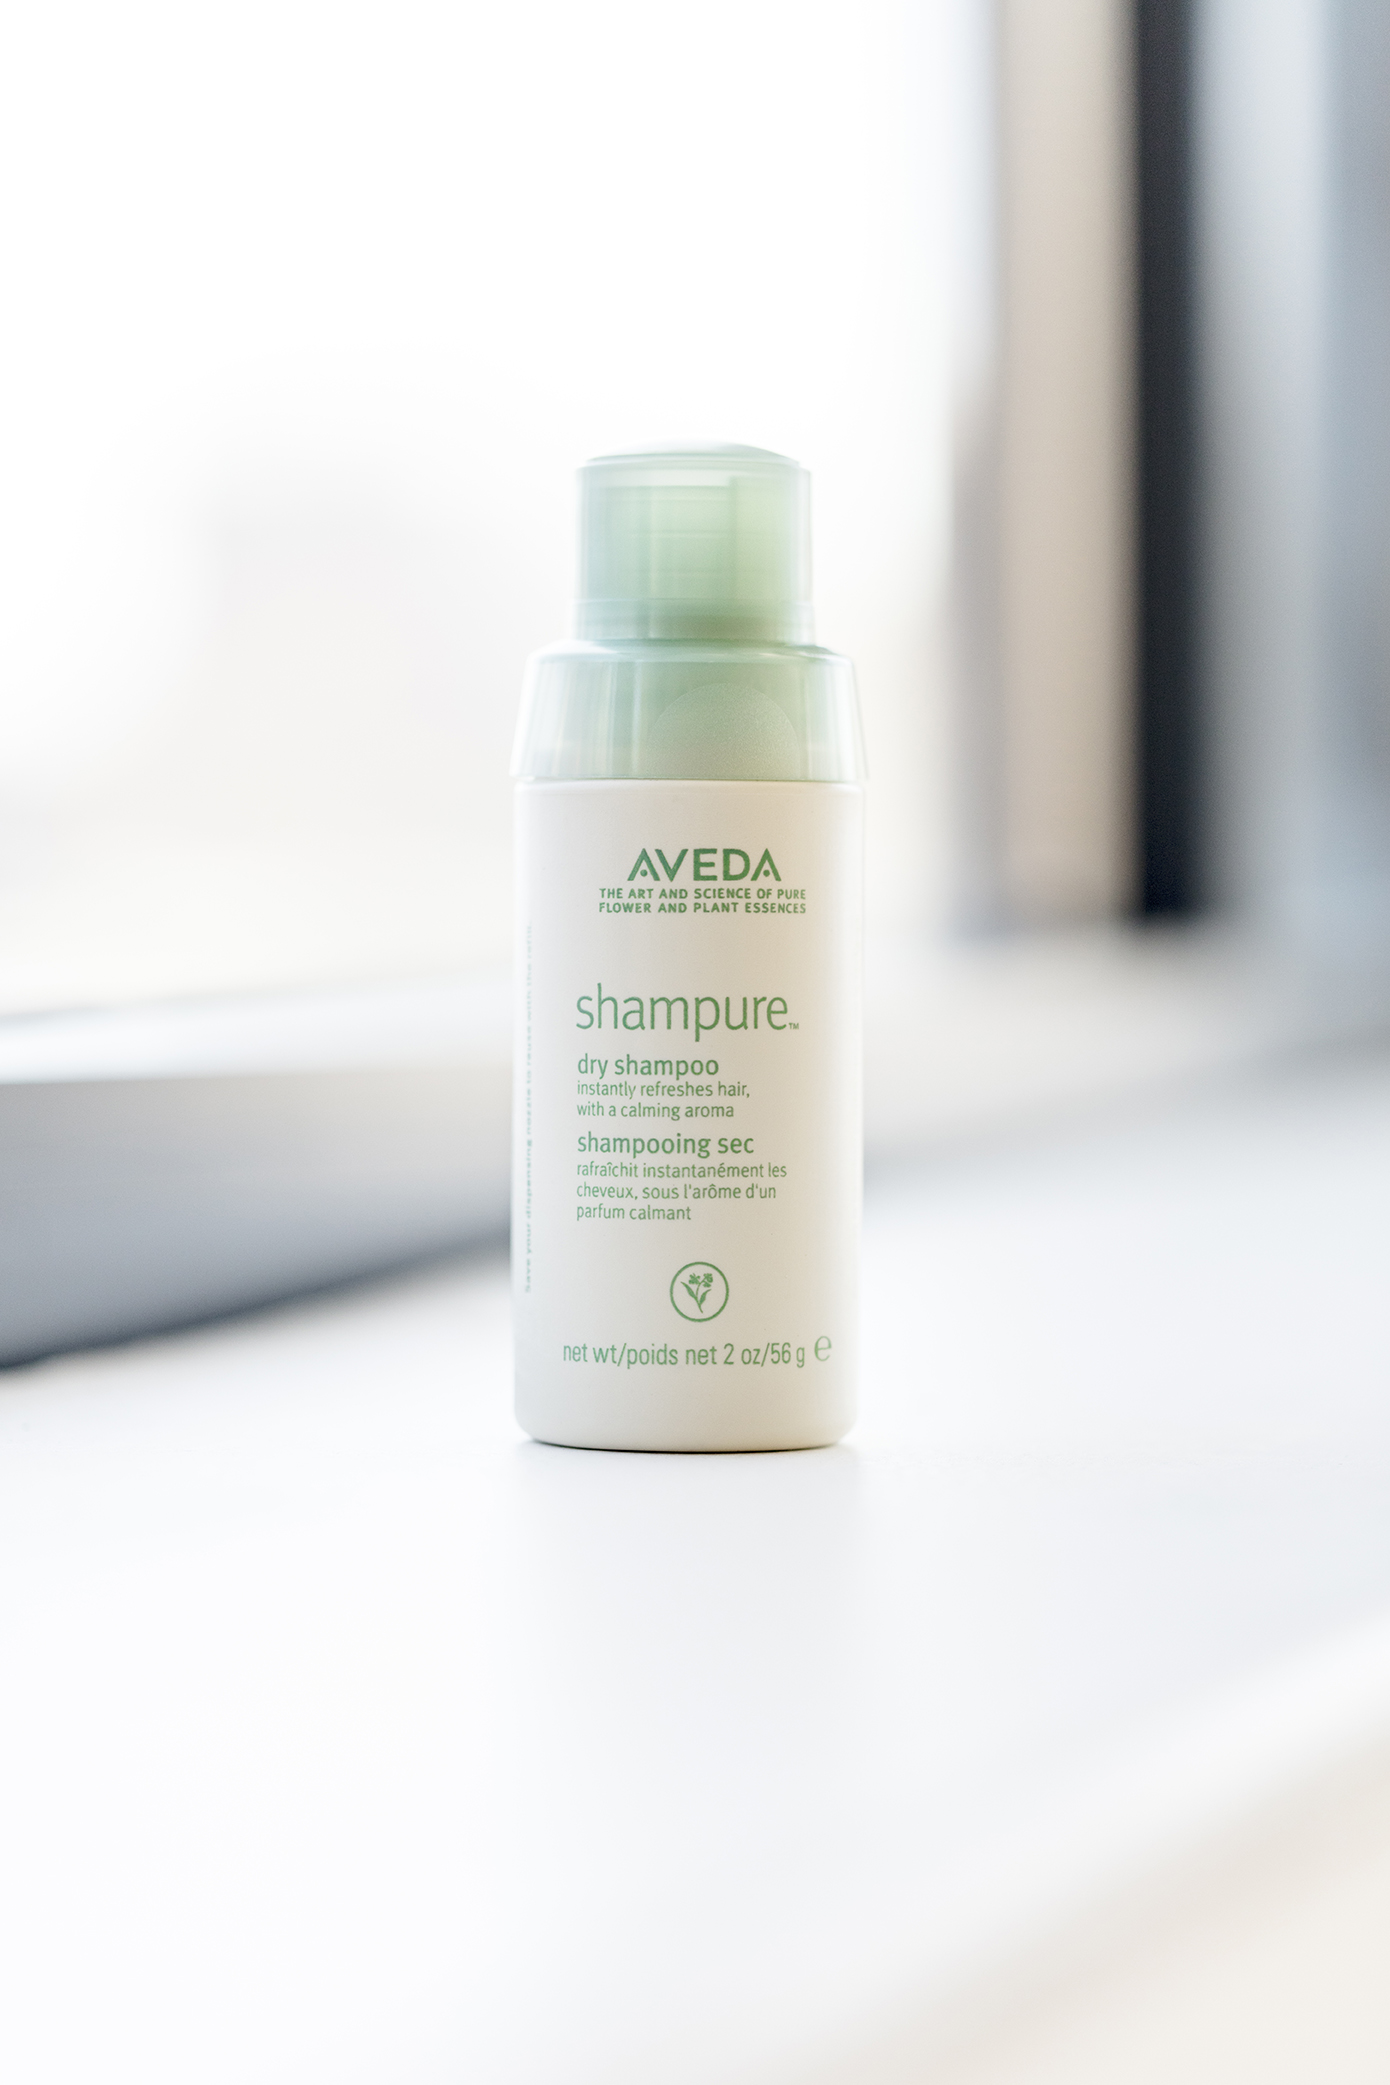 aveda-beauty-product-shampure